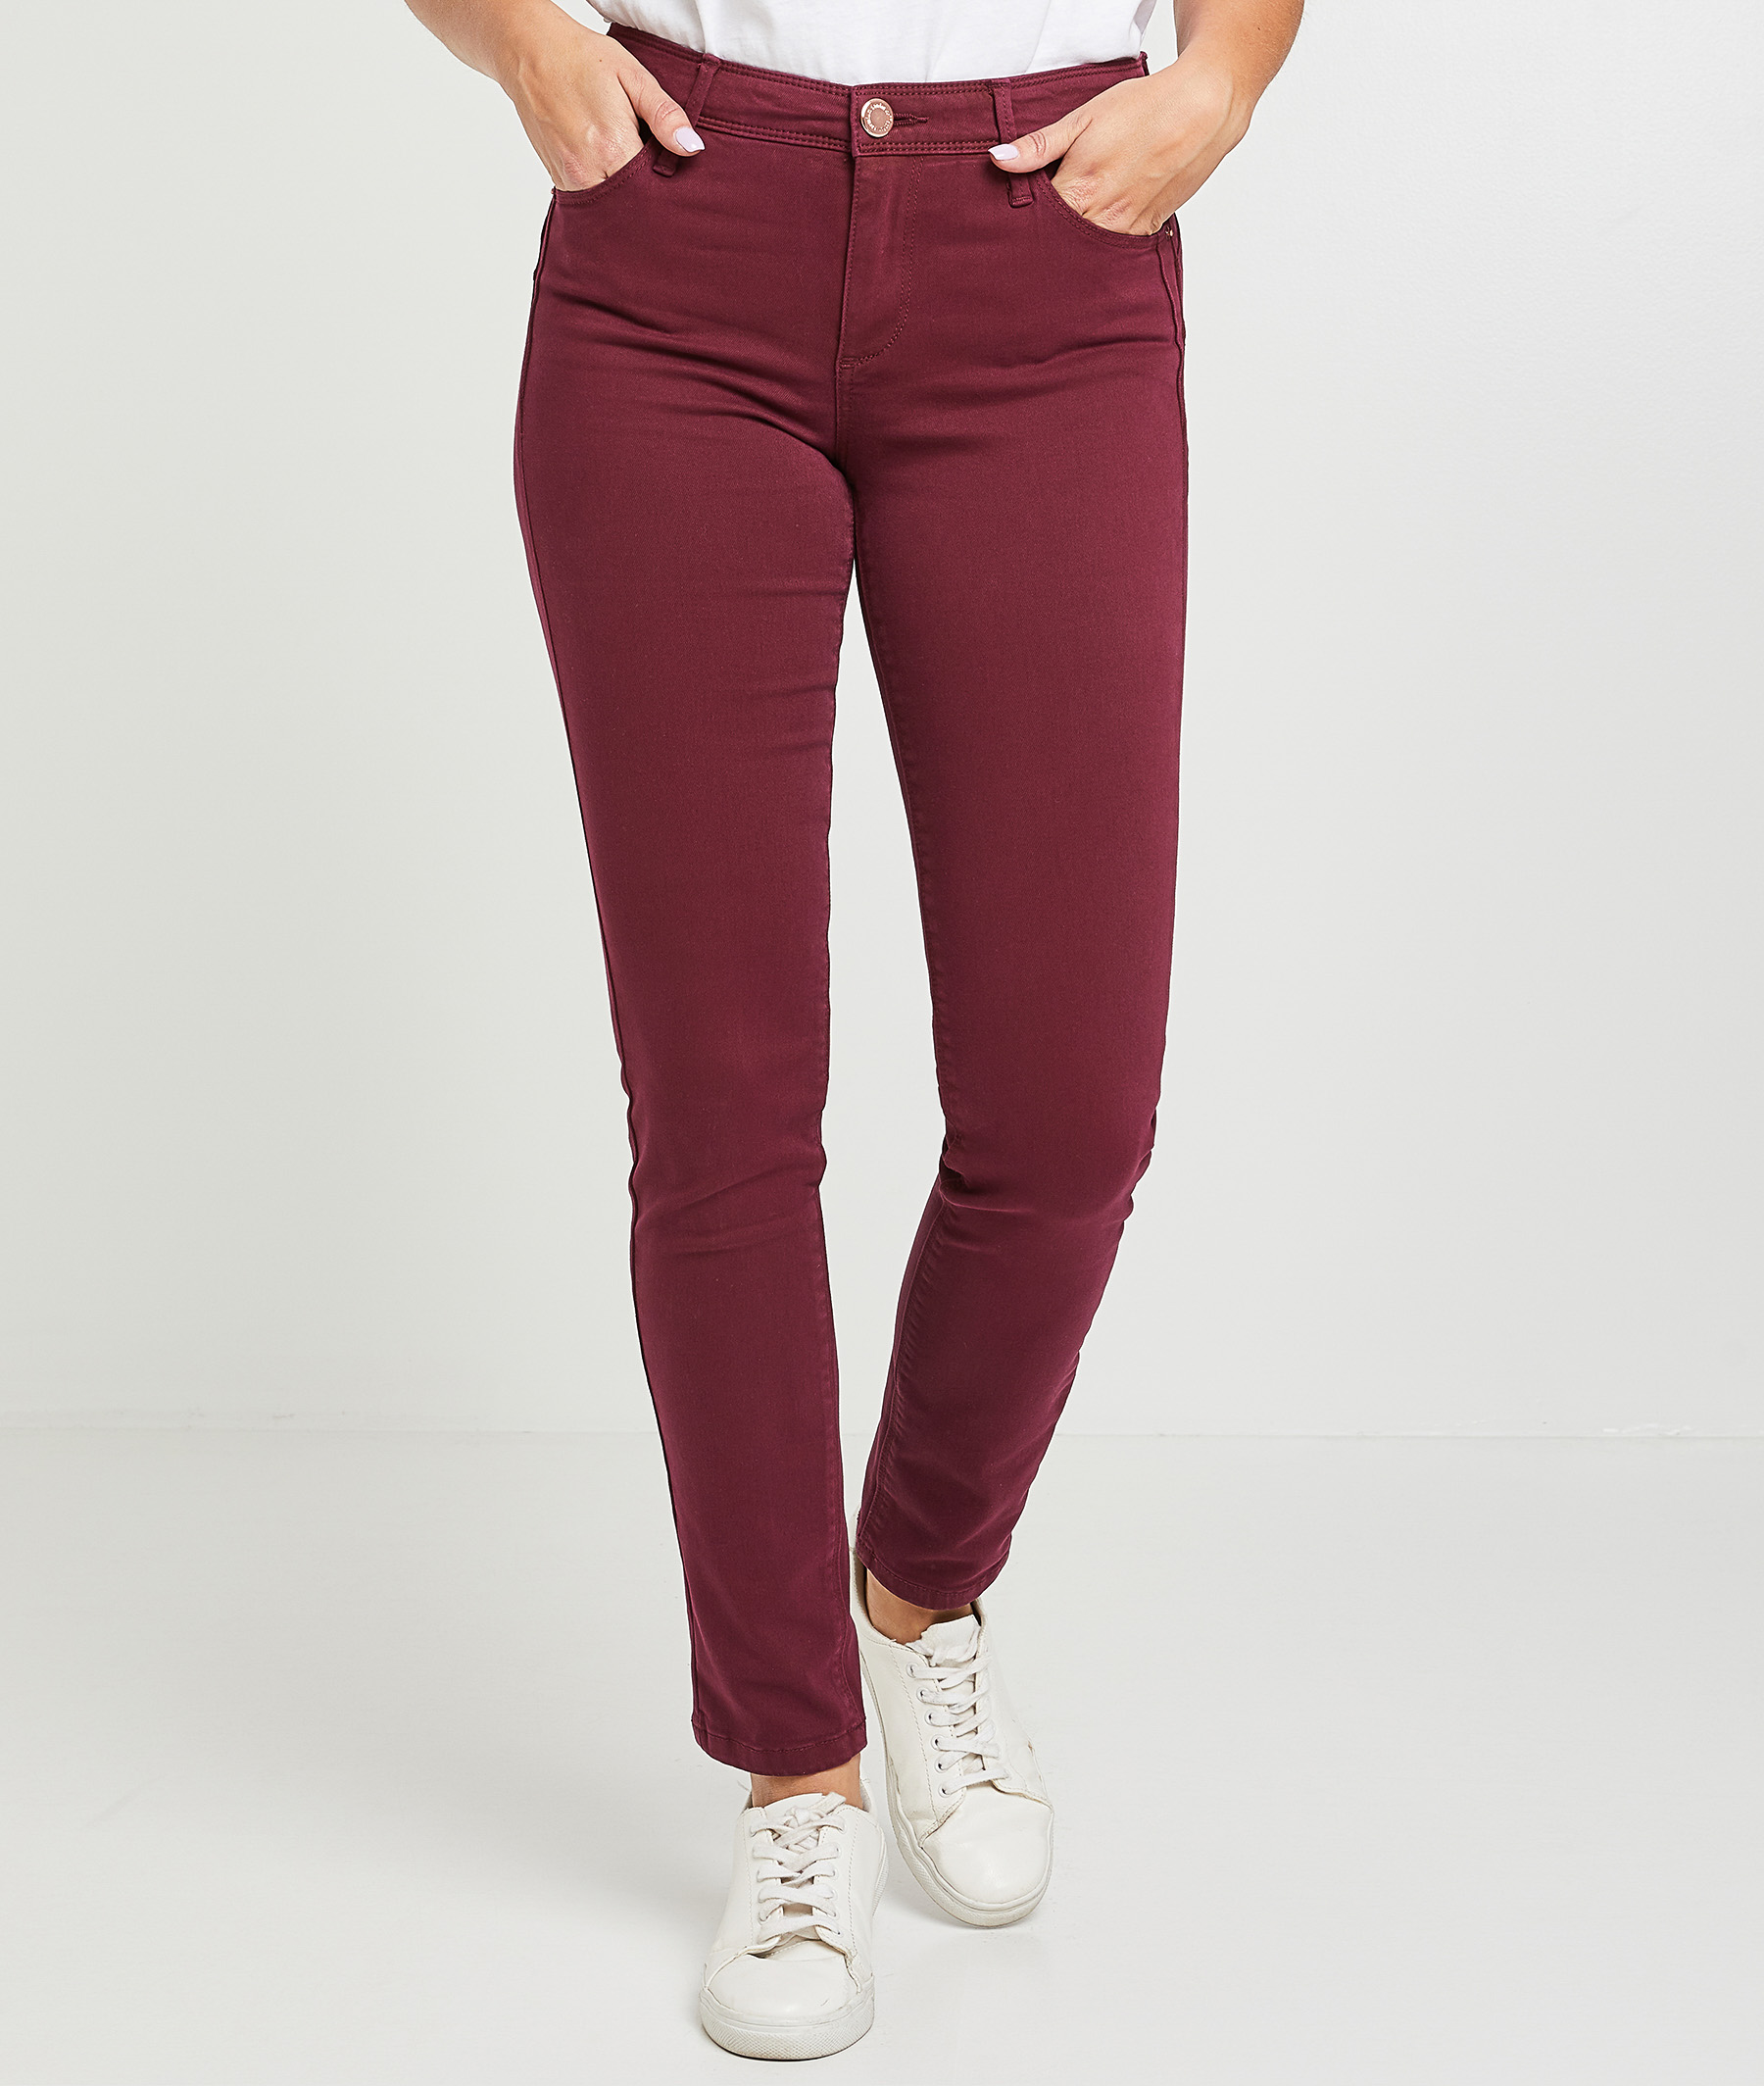 Pantalon flim push up coloré femme GRENAT